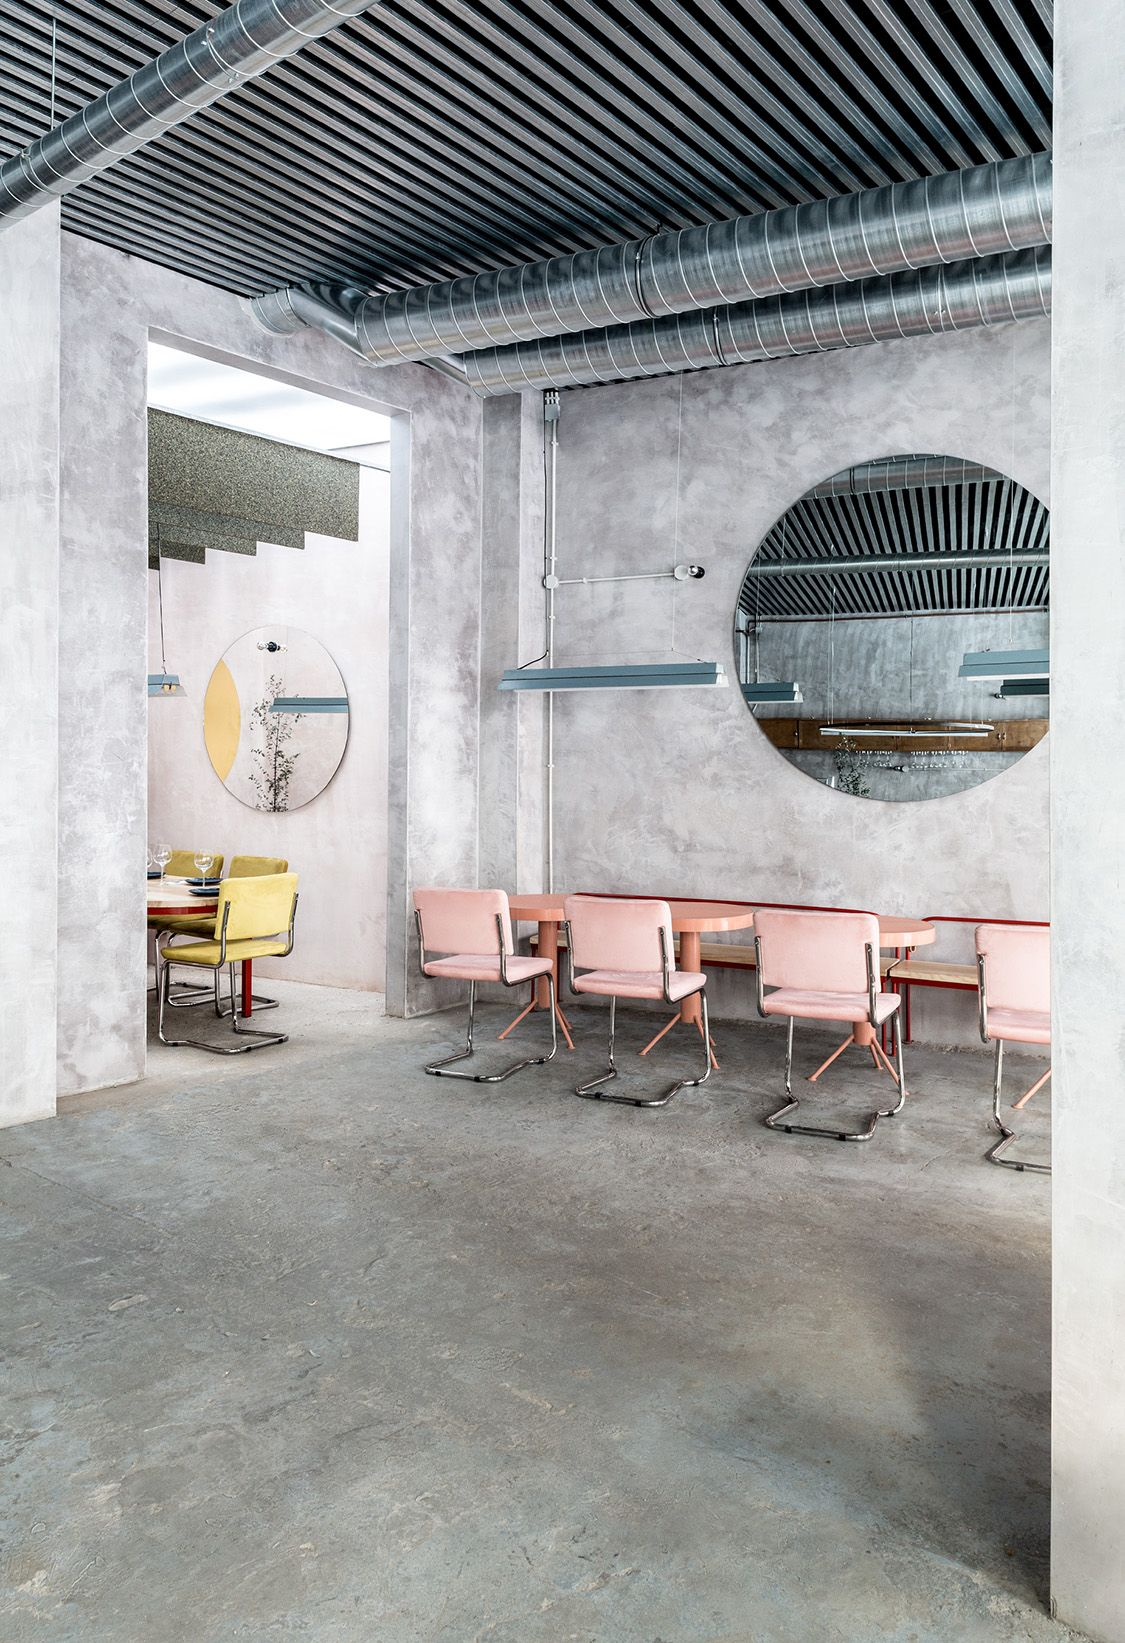 Casaplata is an unusually fresh looking newly reimagined restaurant and cocktail bar in the